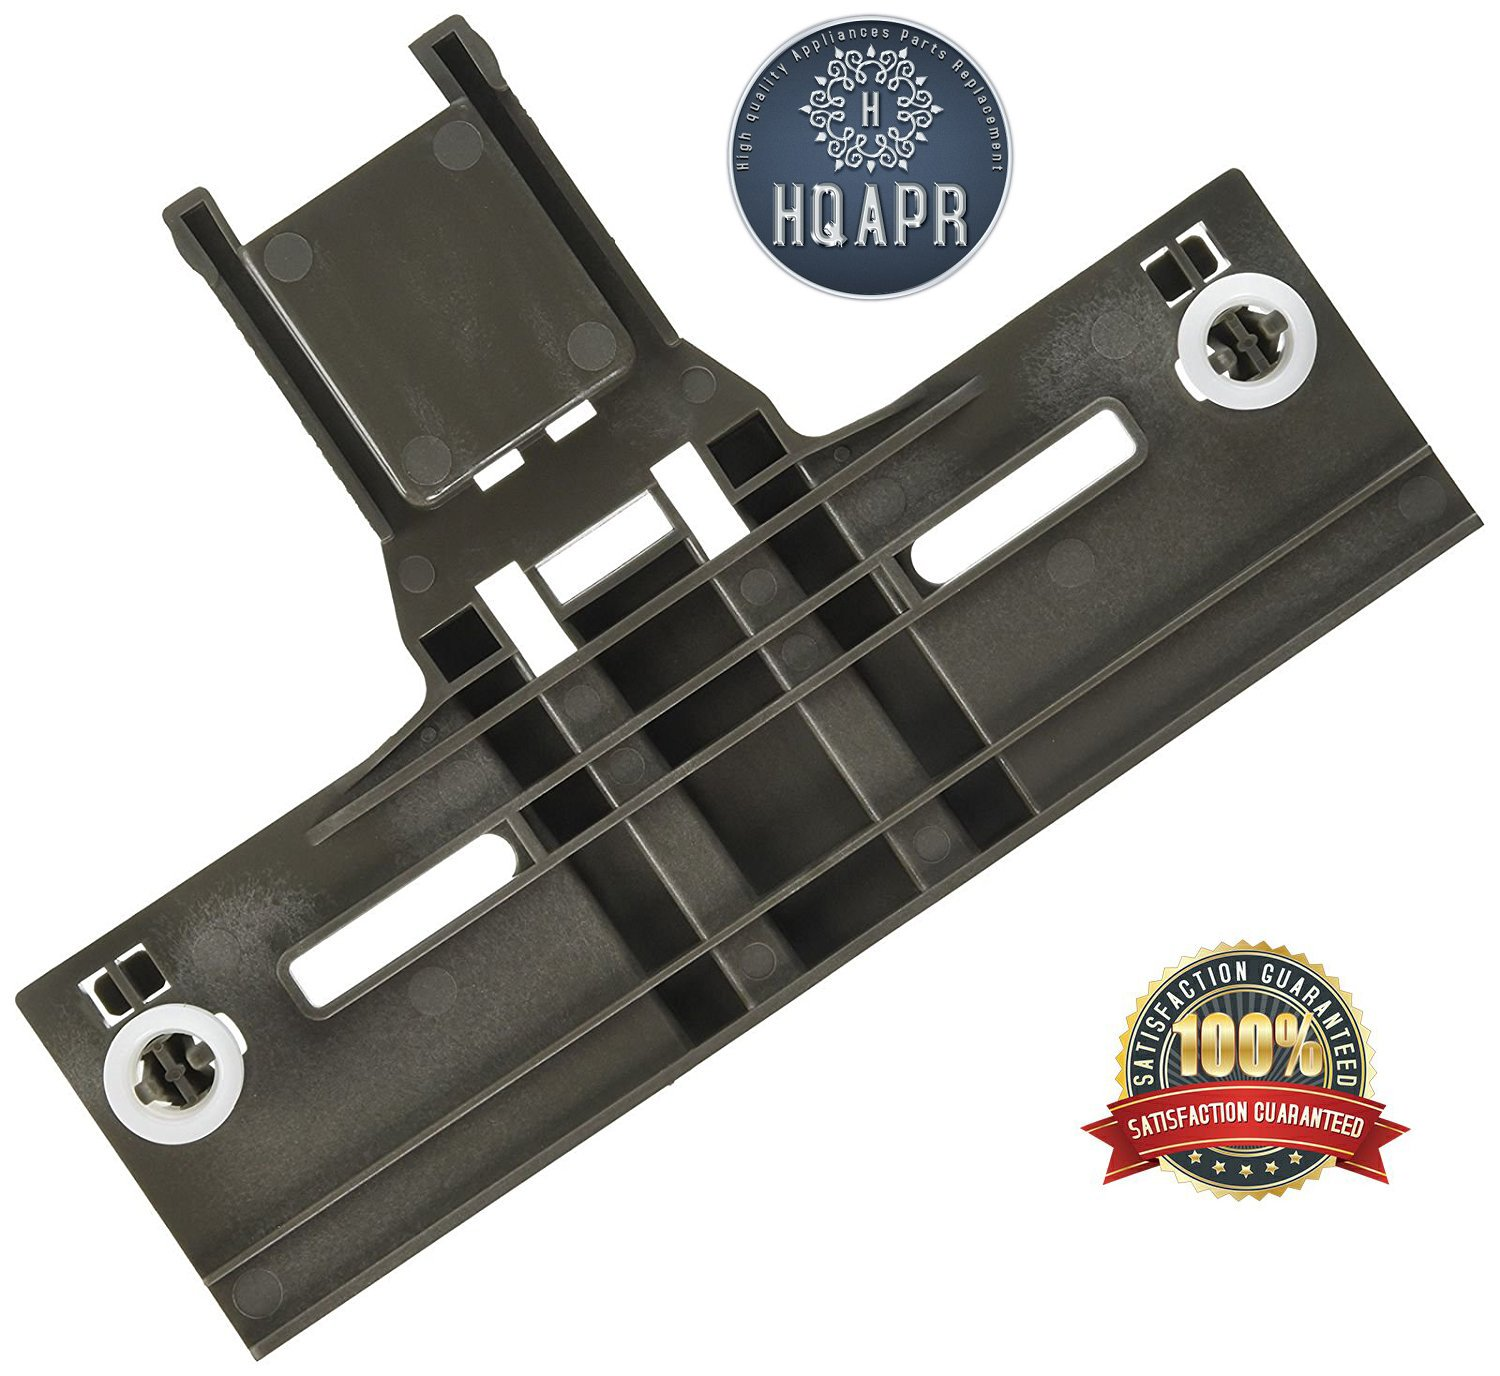 HQAPR New W10350376 Dishwasher Upper Top Rack Adjuster For Kenmore Kitchenaid Sears